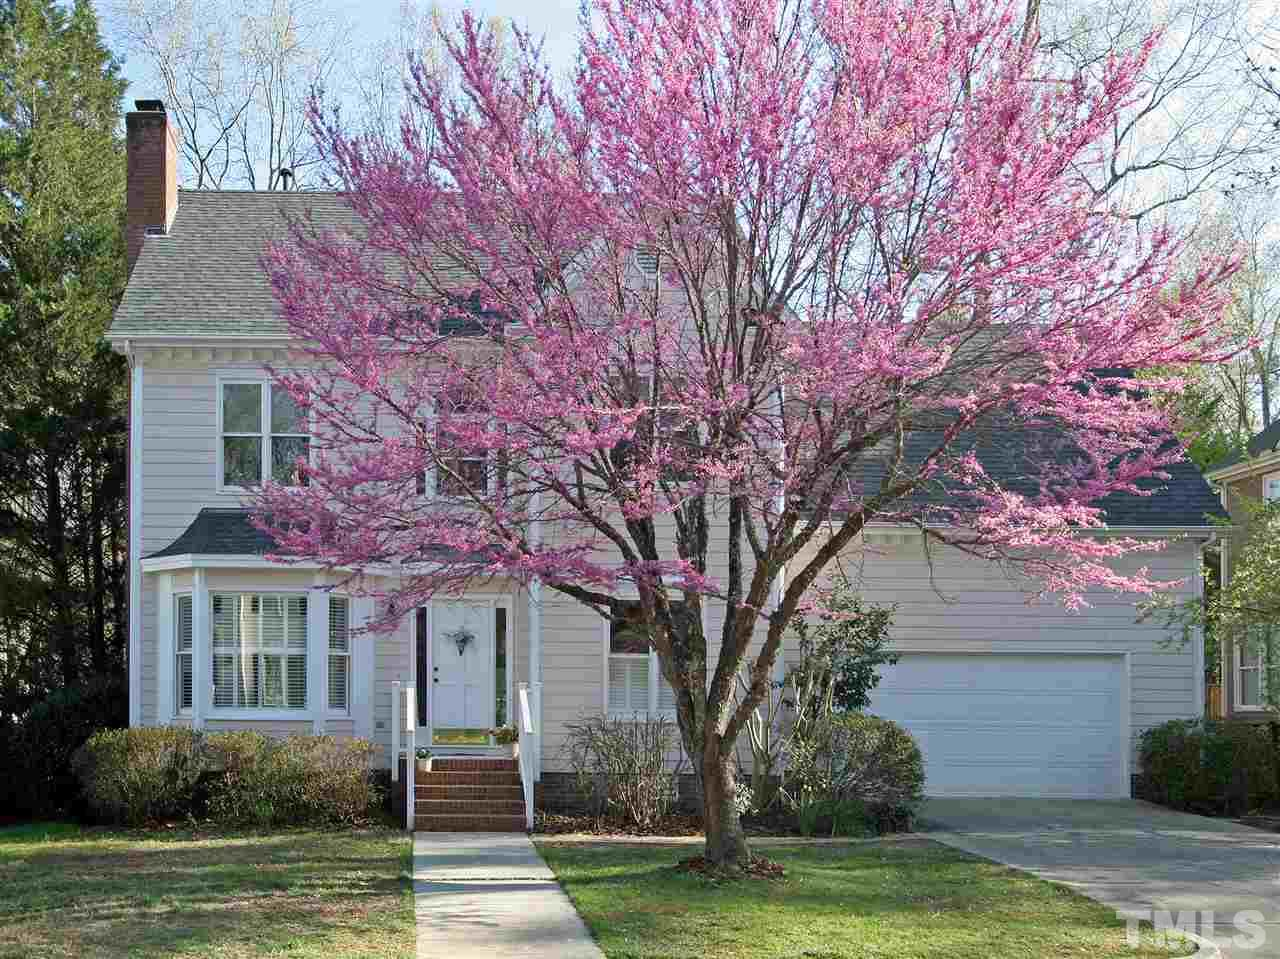 Amazing find! 4-bedroom home in sought-after Loch Bain section of Lochmere. Gorgeous outdoor living space has multi-level decks and lots of flowering trees, shrubs. HUGE living room with fireplace, PLUS family room/office with en suite 1/2 bath, PLUS sunroom, PLUS 2nd floor bonus room, PLUS finished 3rd floor bedroom with custom built-ins. Formal dining and breakfast rooms. Walk to Ritter Park, Hemlock Bluffs Nature Park, Stevens Nature Center. Follow the Greenway to Lochmere Golf Club or Regency Lake.